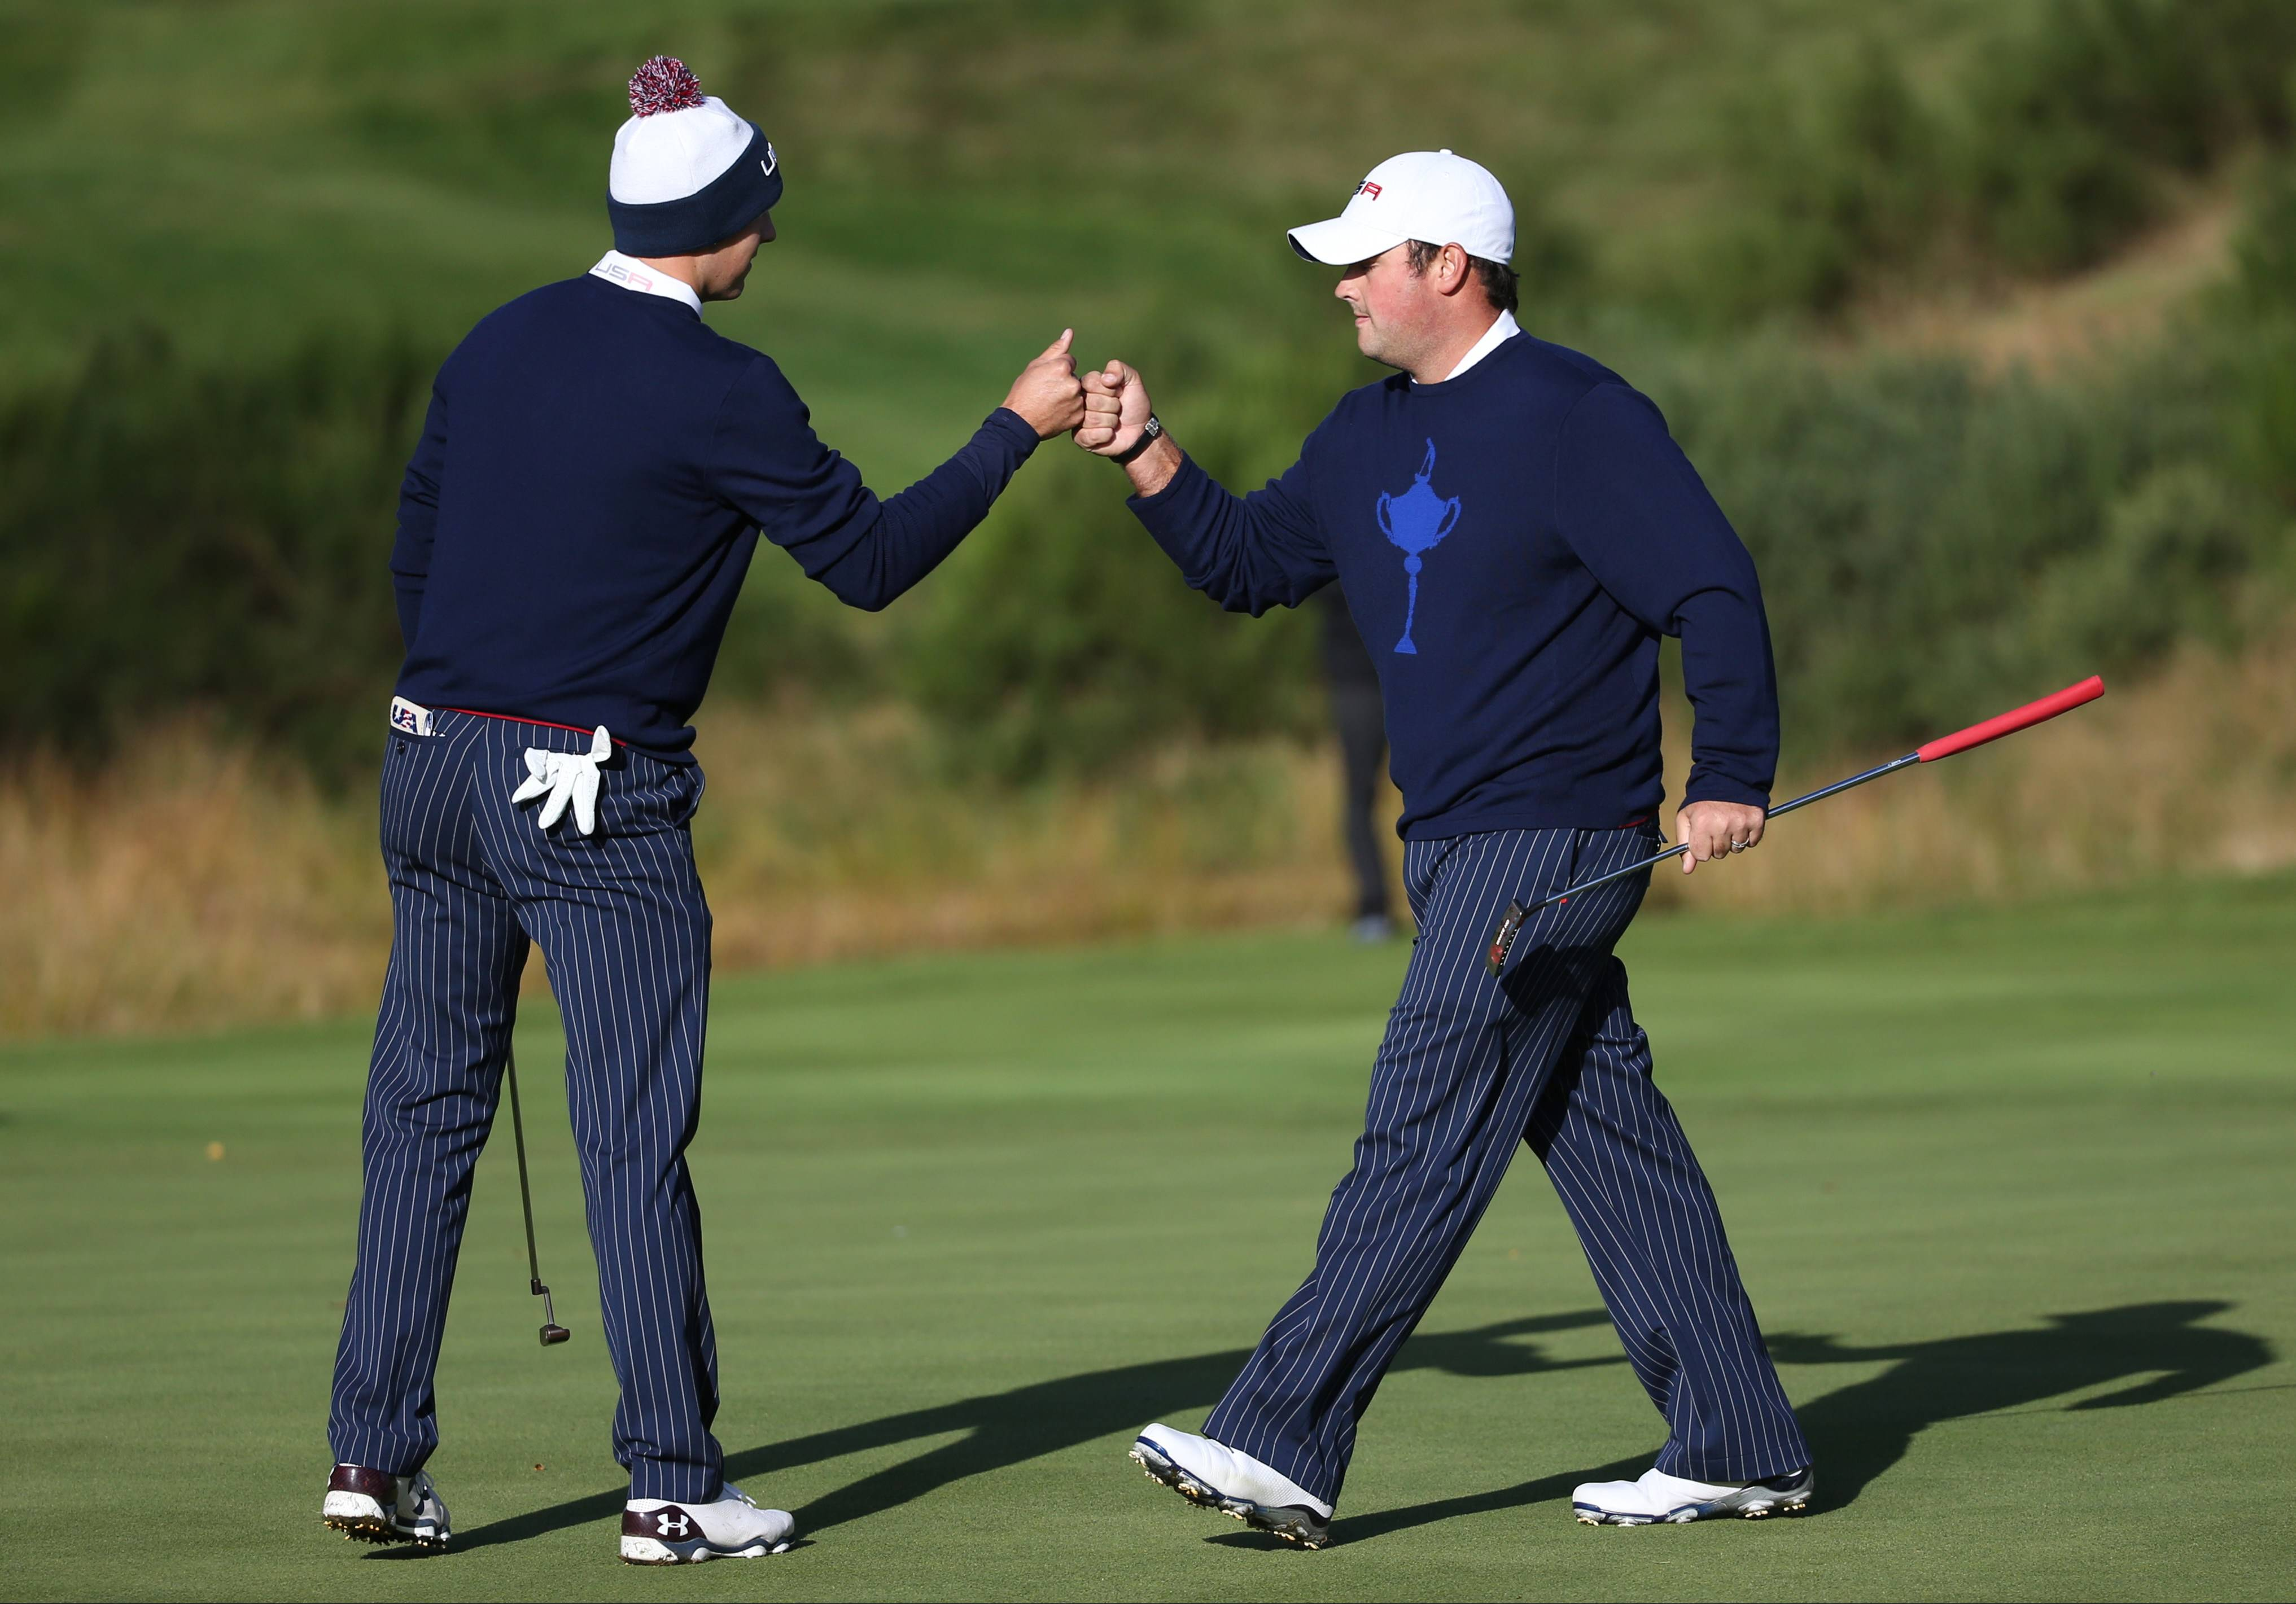 Jordan Spieth, left, and Patrick Reed, right, of the U.S. celebrate on the 6th green Friday during the fourball match on the first day of the Ryder Cup at Gleneagles, Scotland.